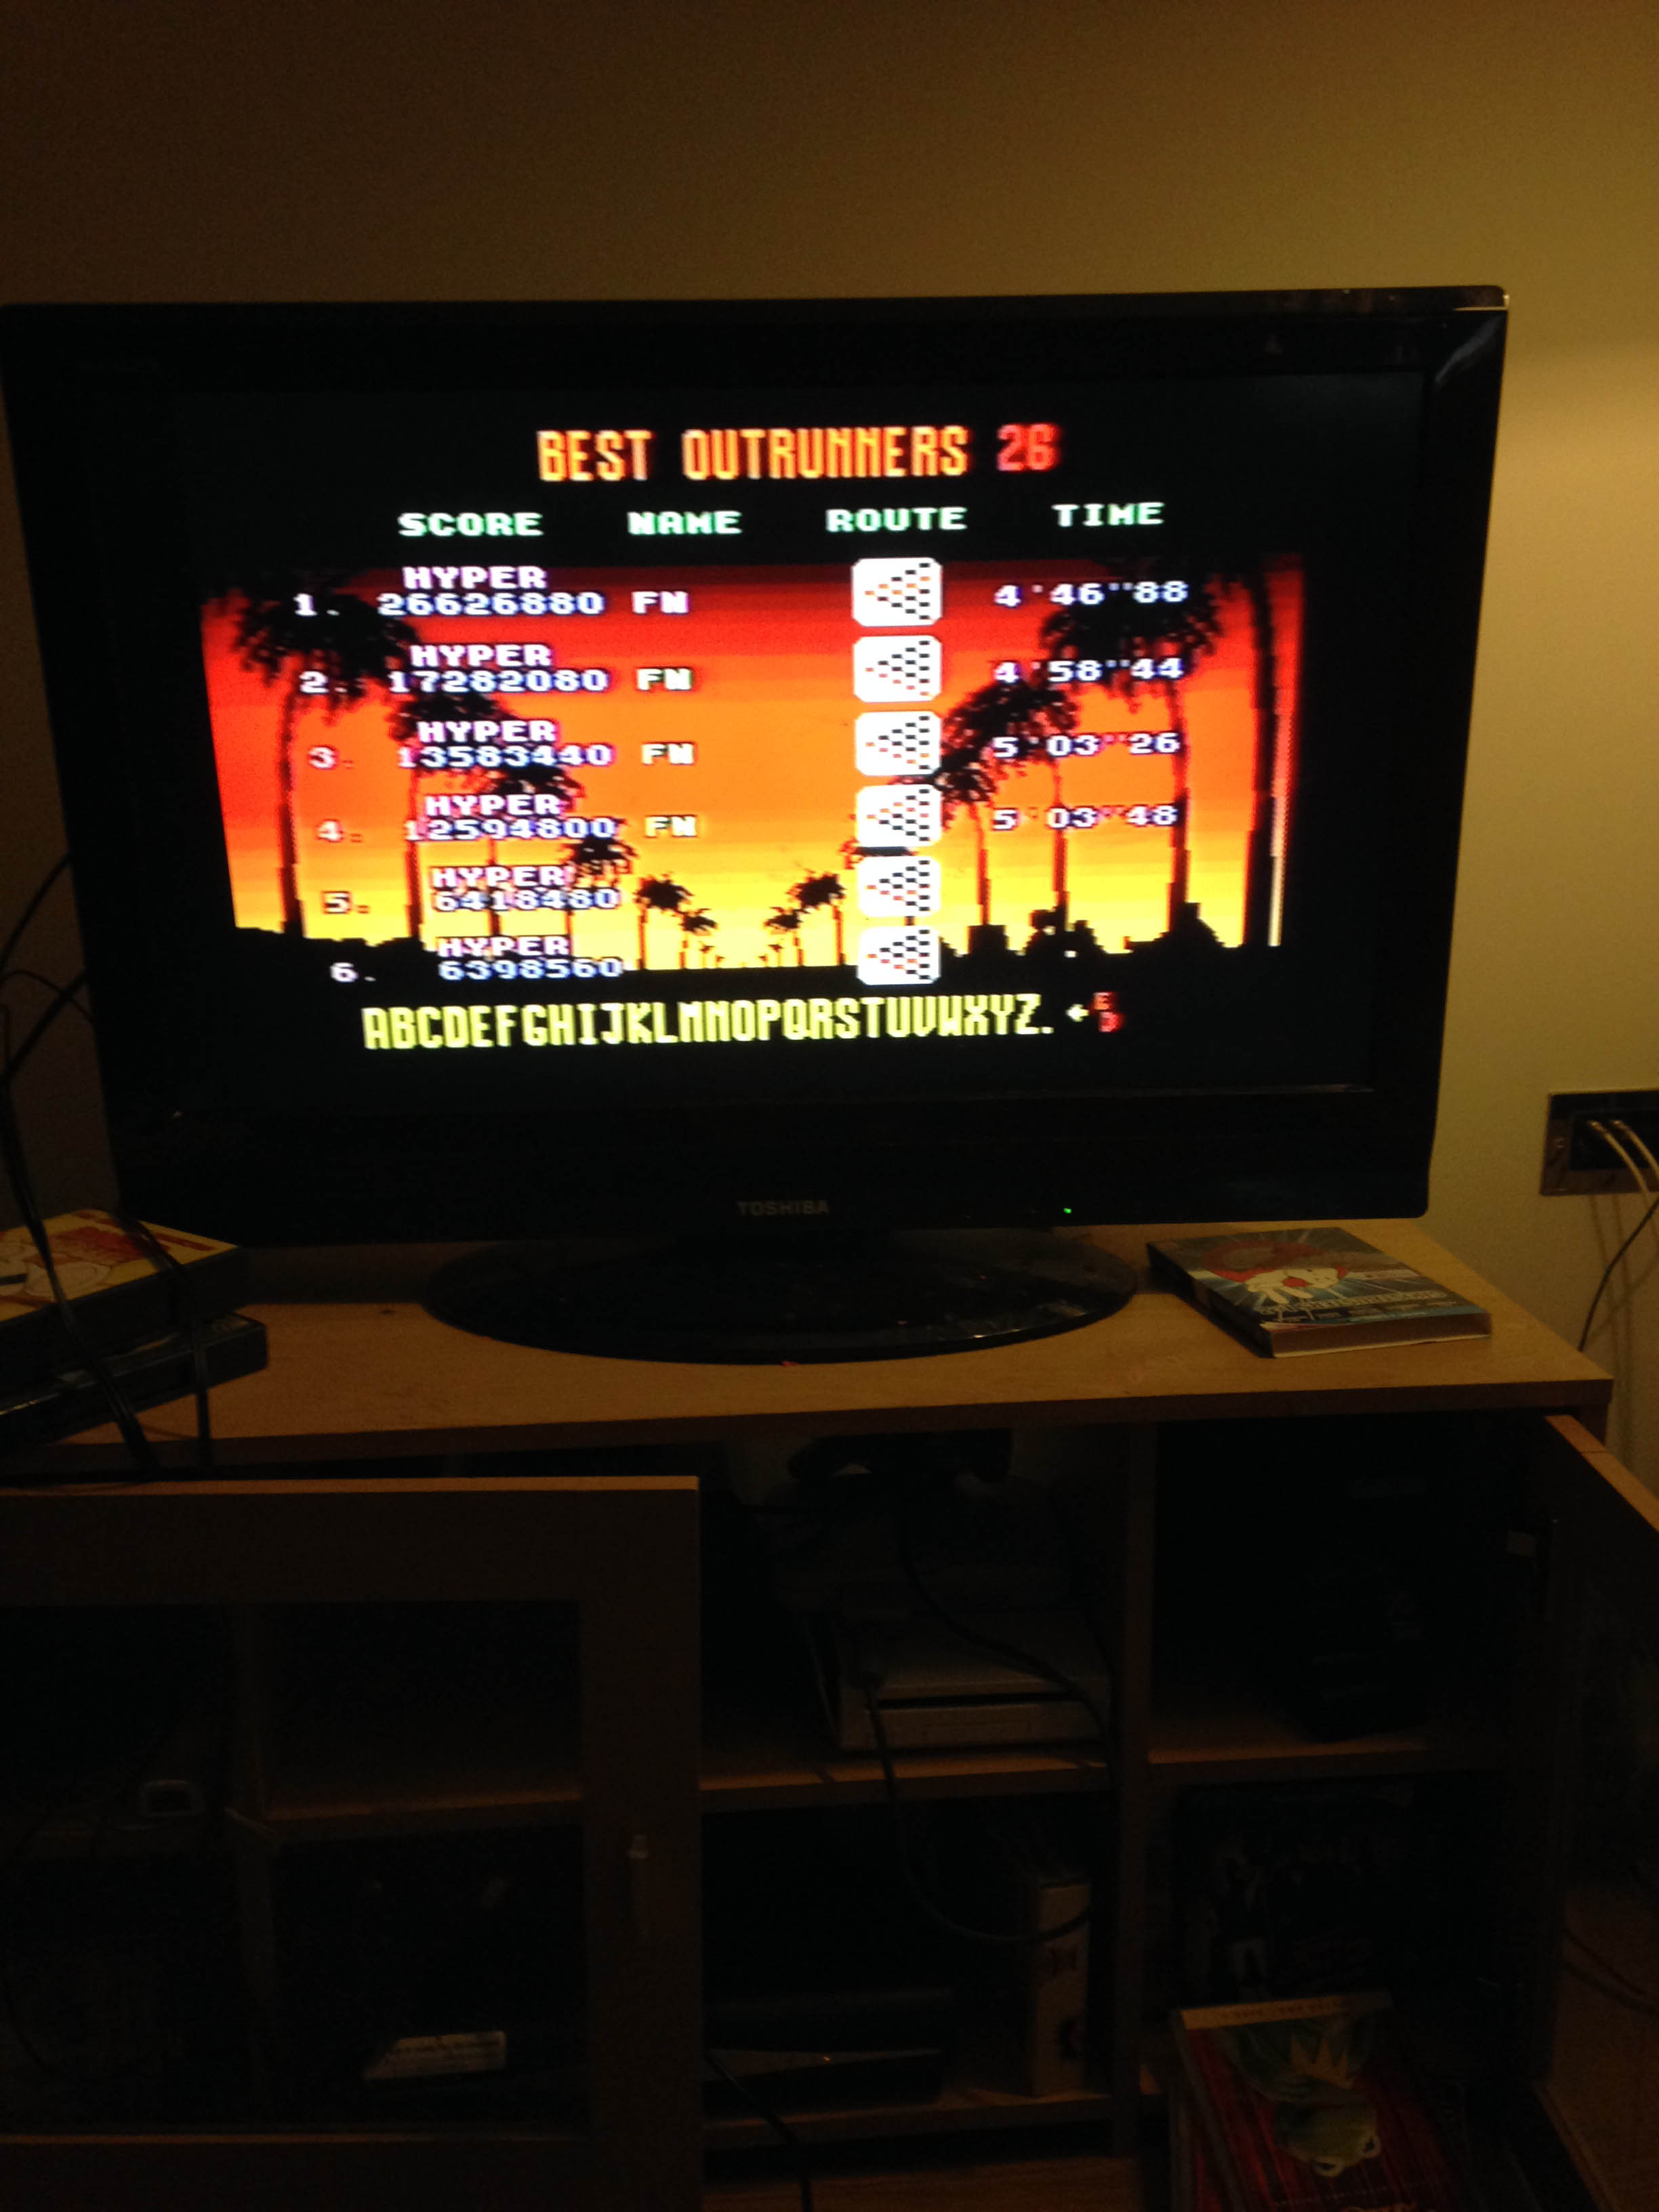 mechafatnick: Outrun [Hyper] (Sega Genesis / MegaDrive) 26,626,880 points on 2015-03-07 02:47:05